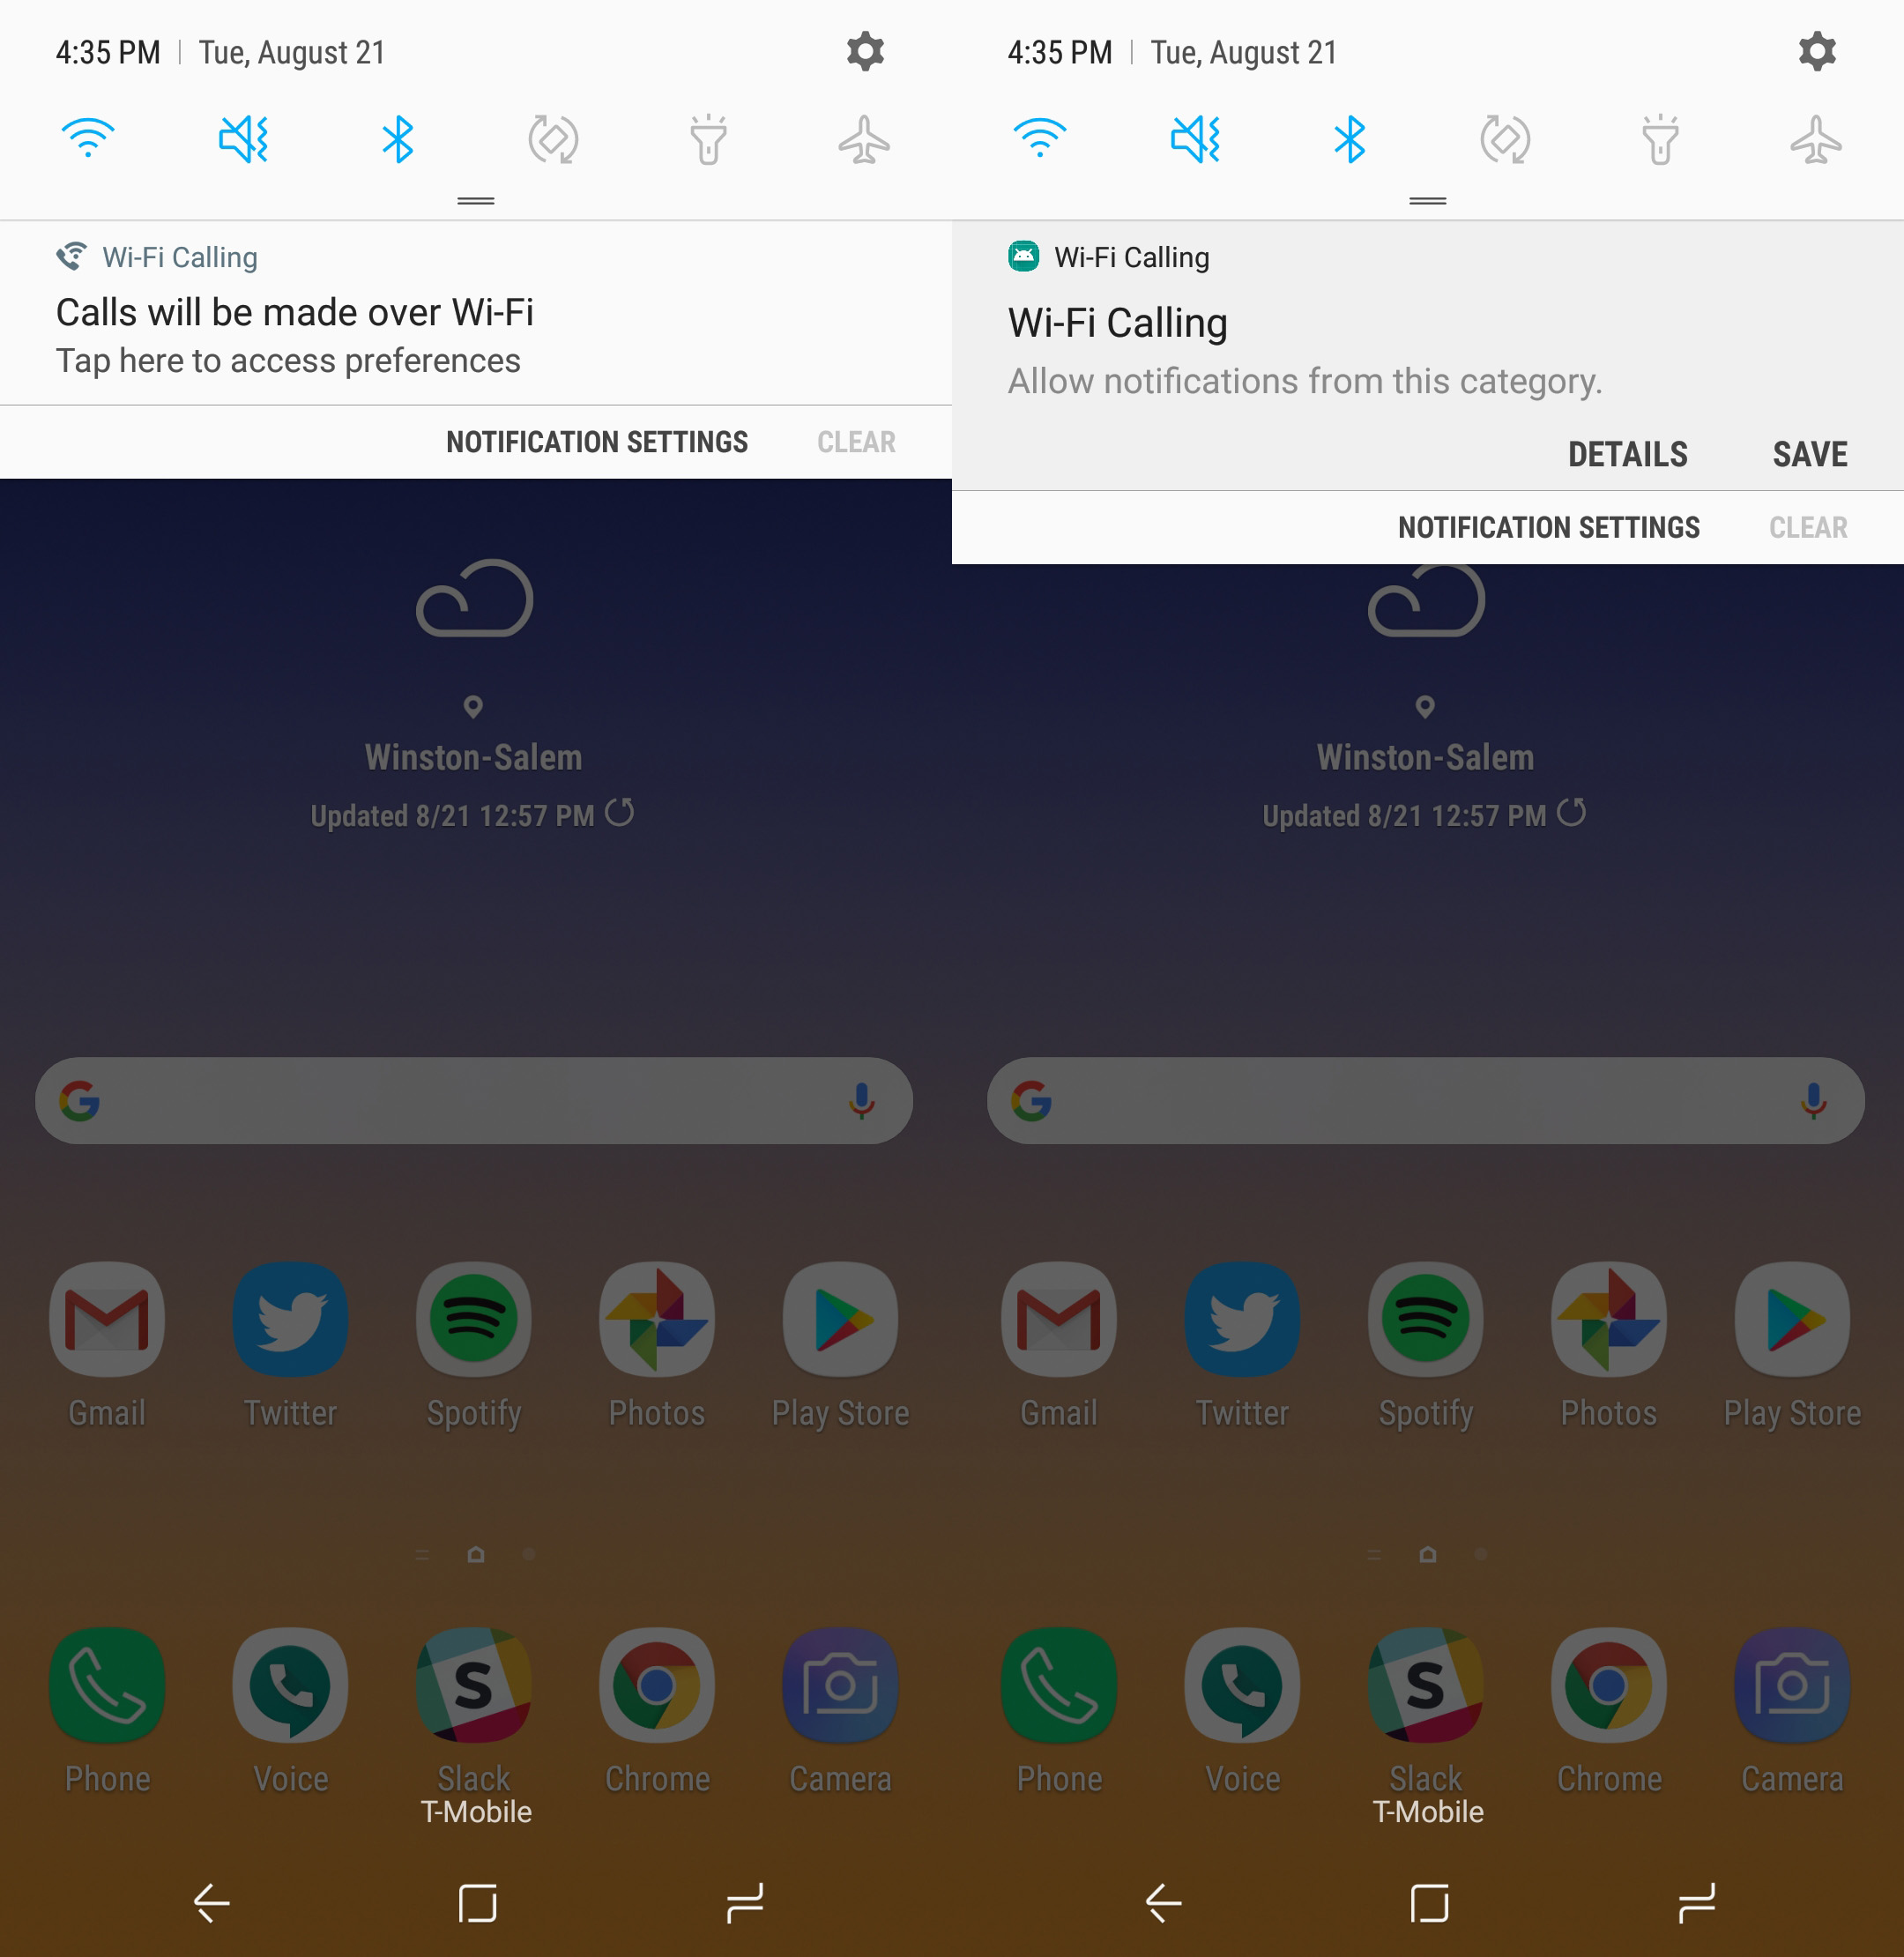 How to hide the Wi-Fi calling notification on Samsung devices